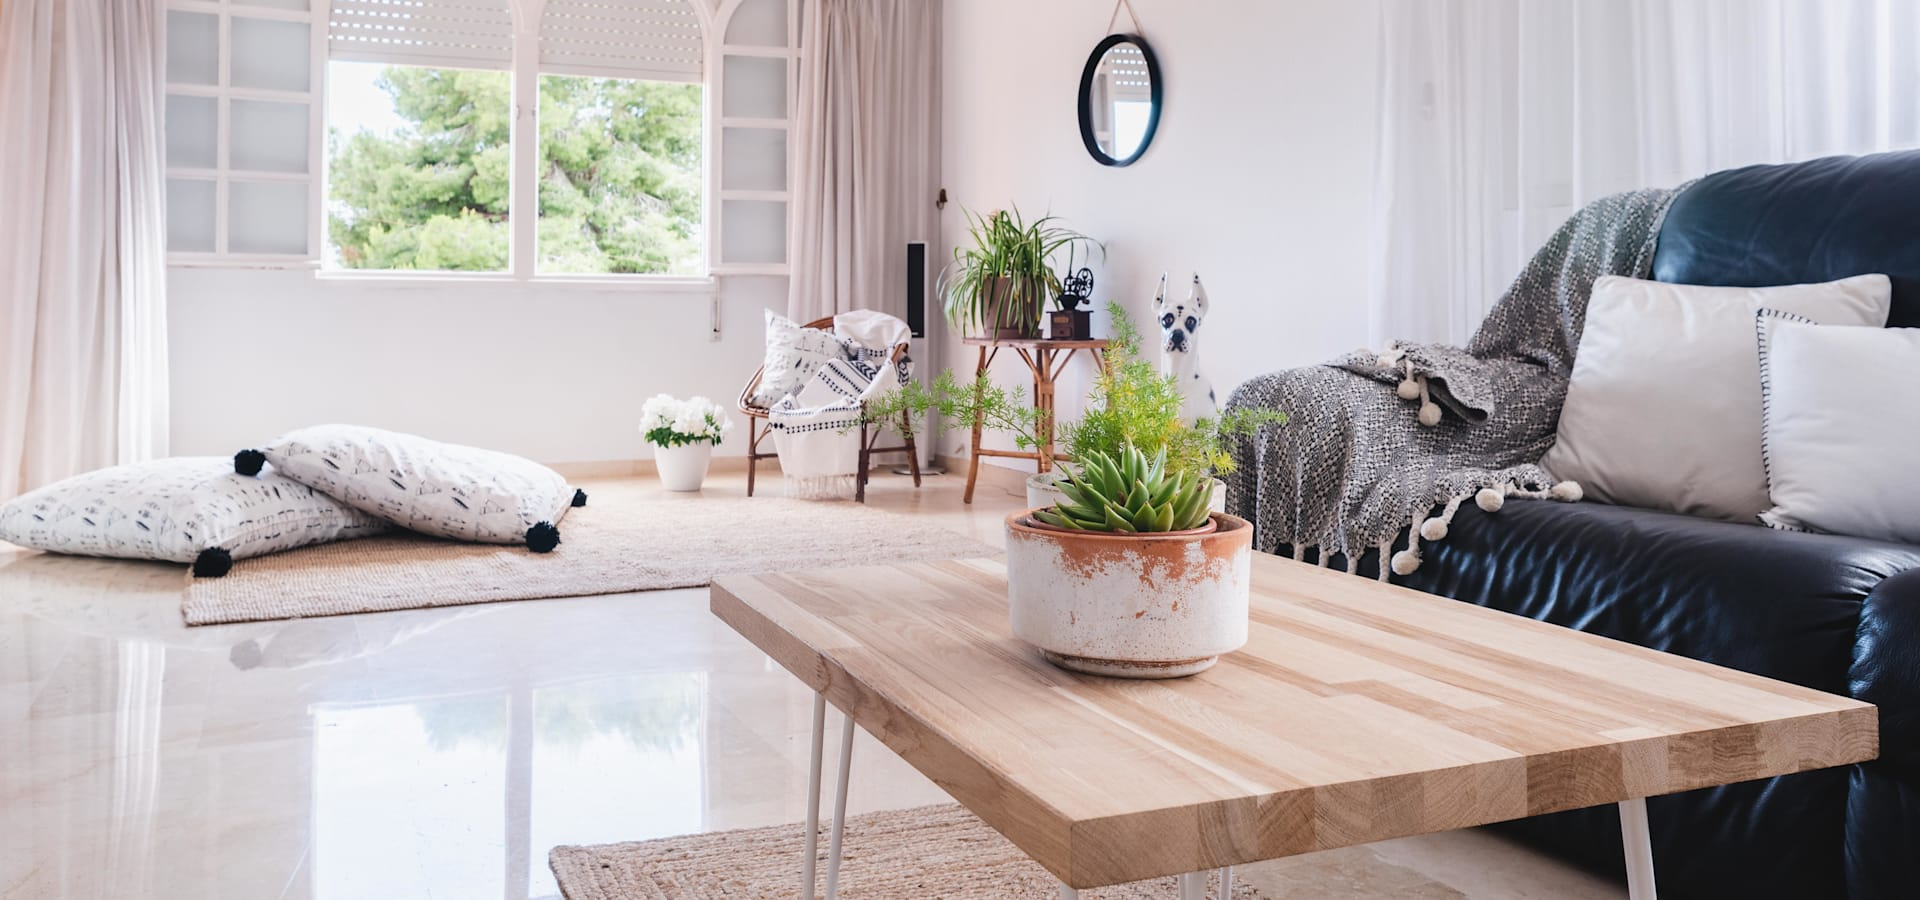 Bhoga Home Staging